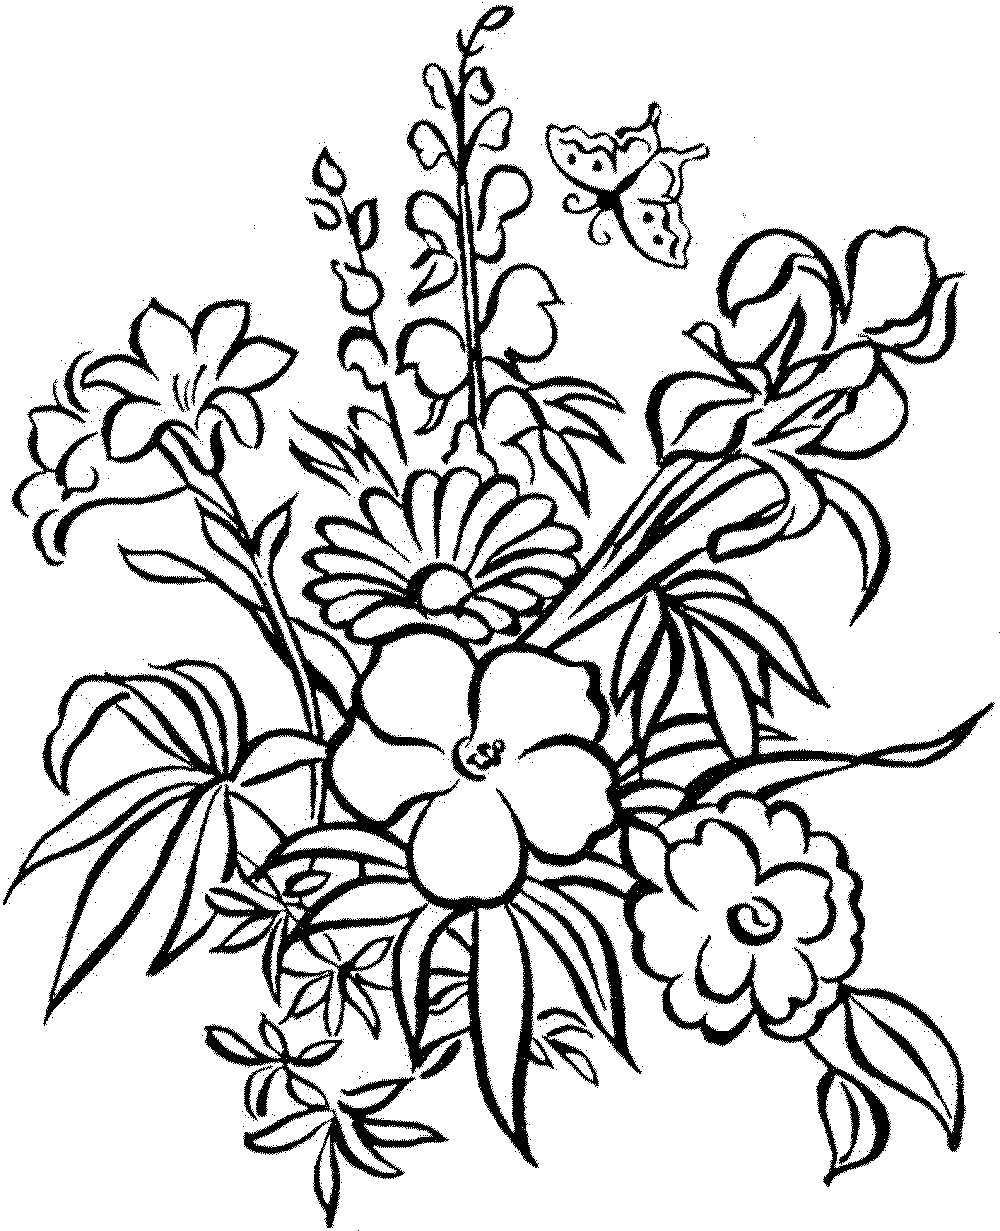 coloring pages for adults flowers flower coloring pages for adults at getdrawings free adults coloring for flowers pages